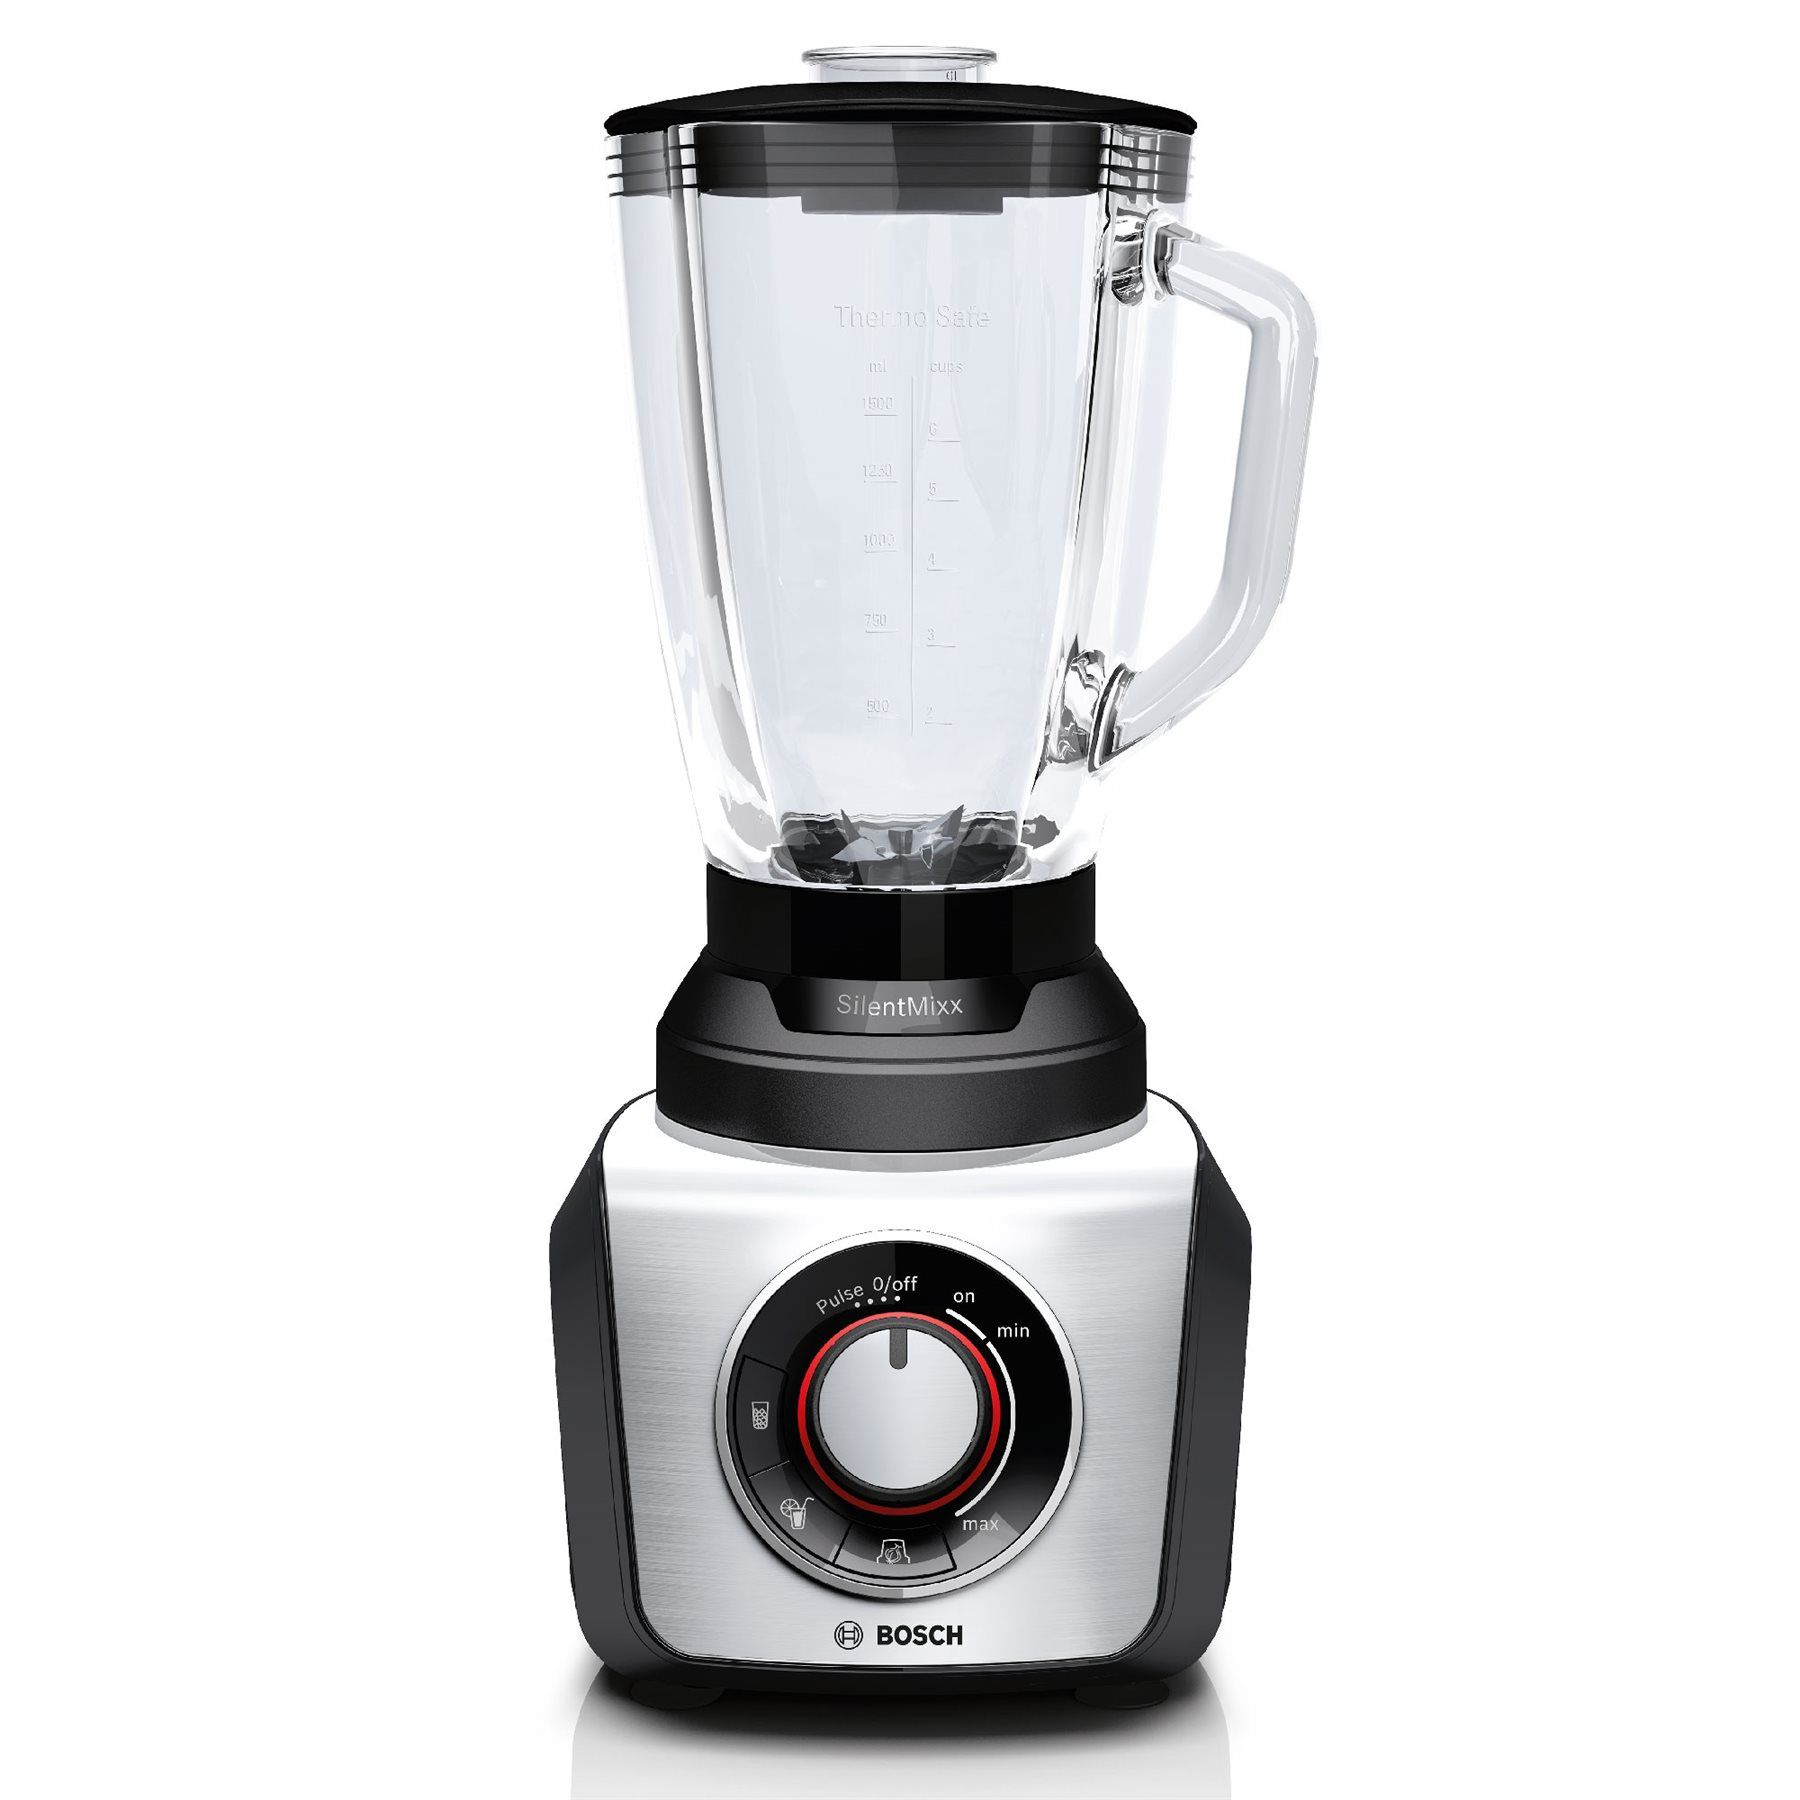 Bosch Small Kitchen Appliances Bosch Mmb64g3m Silentmixx Blender Products And Blenders